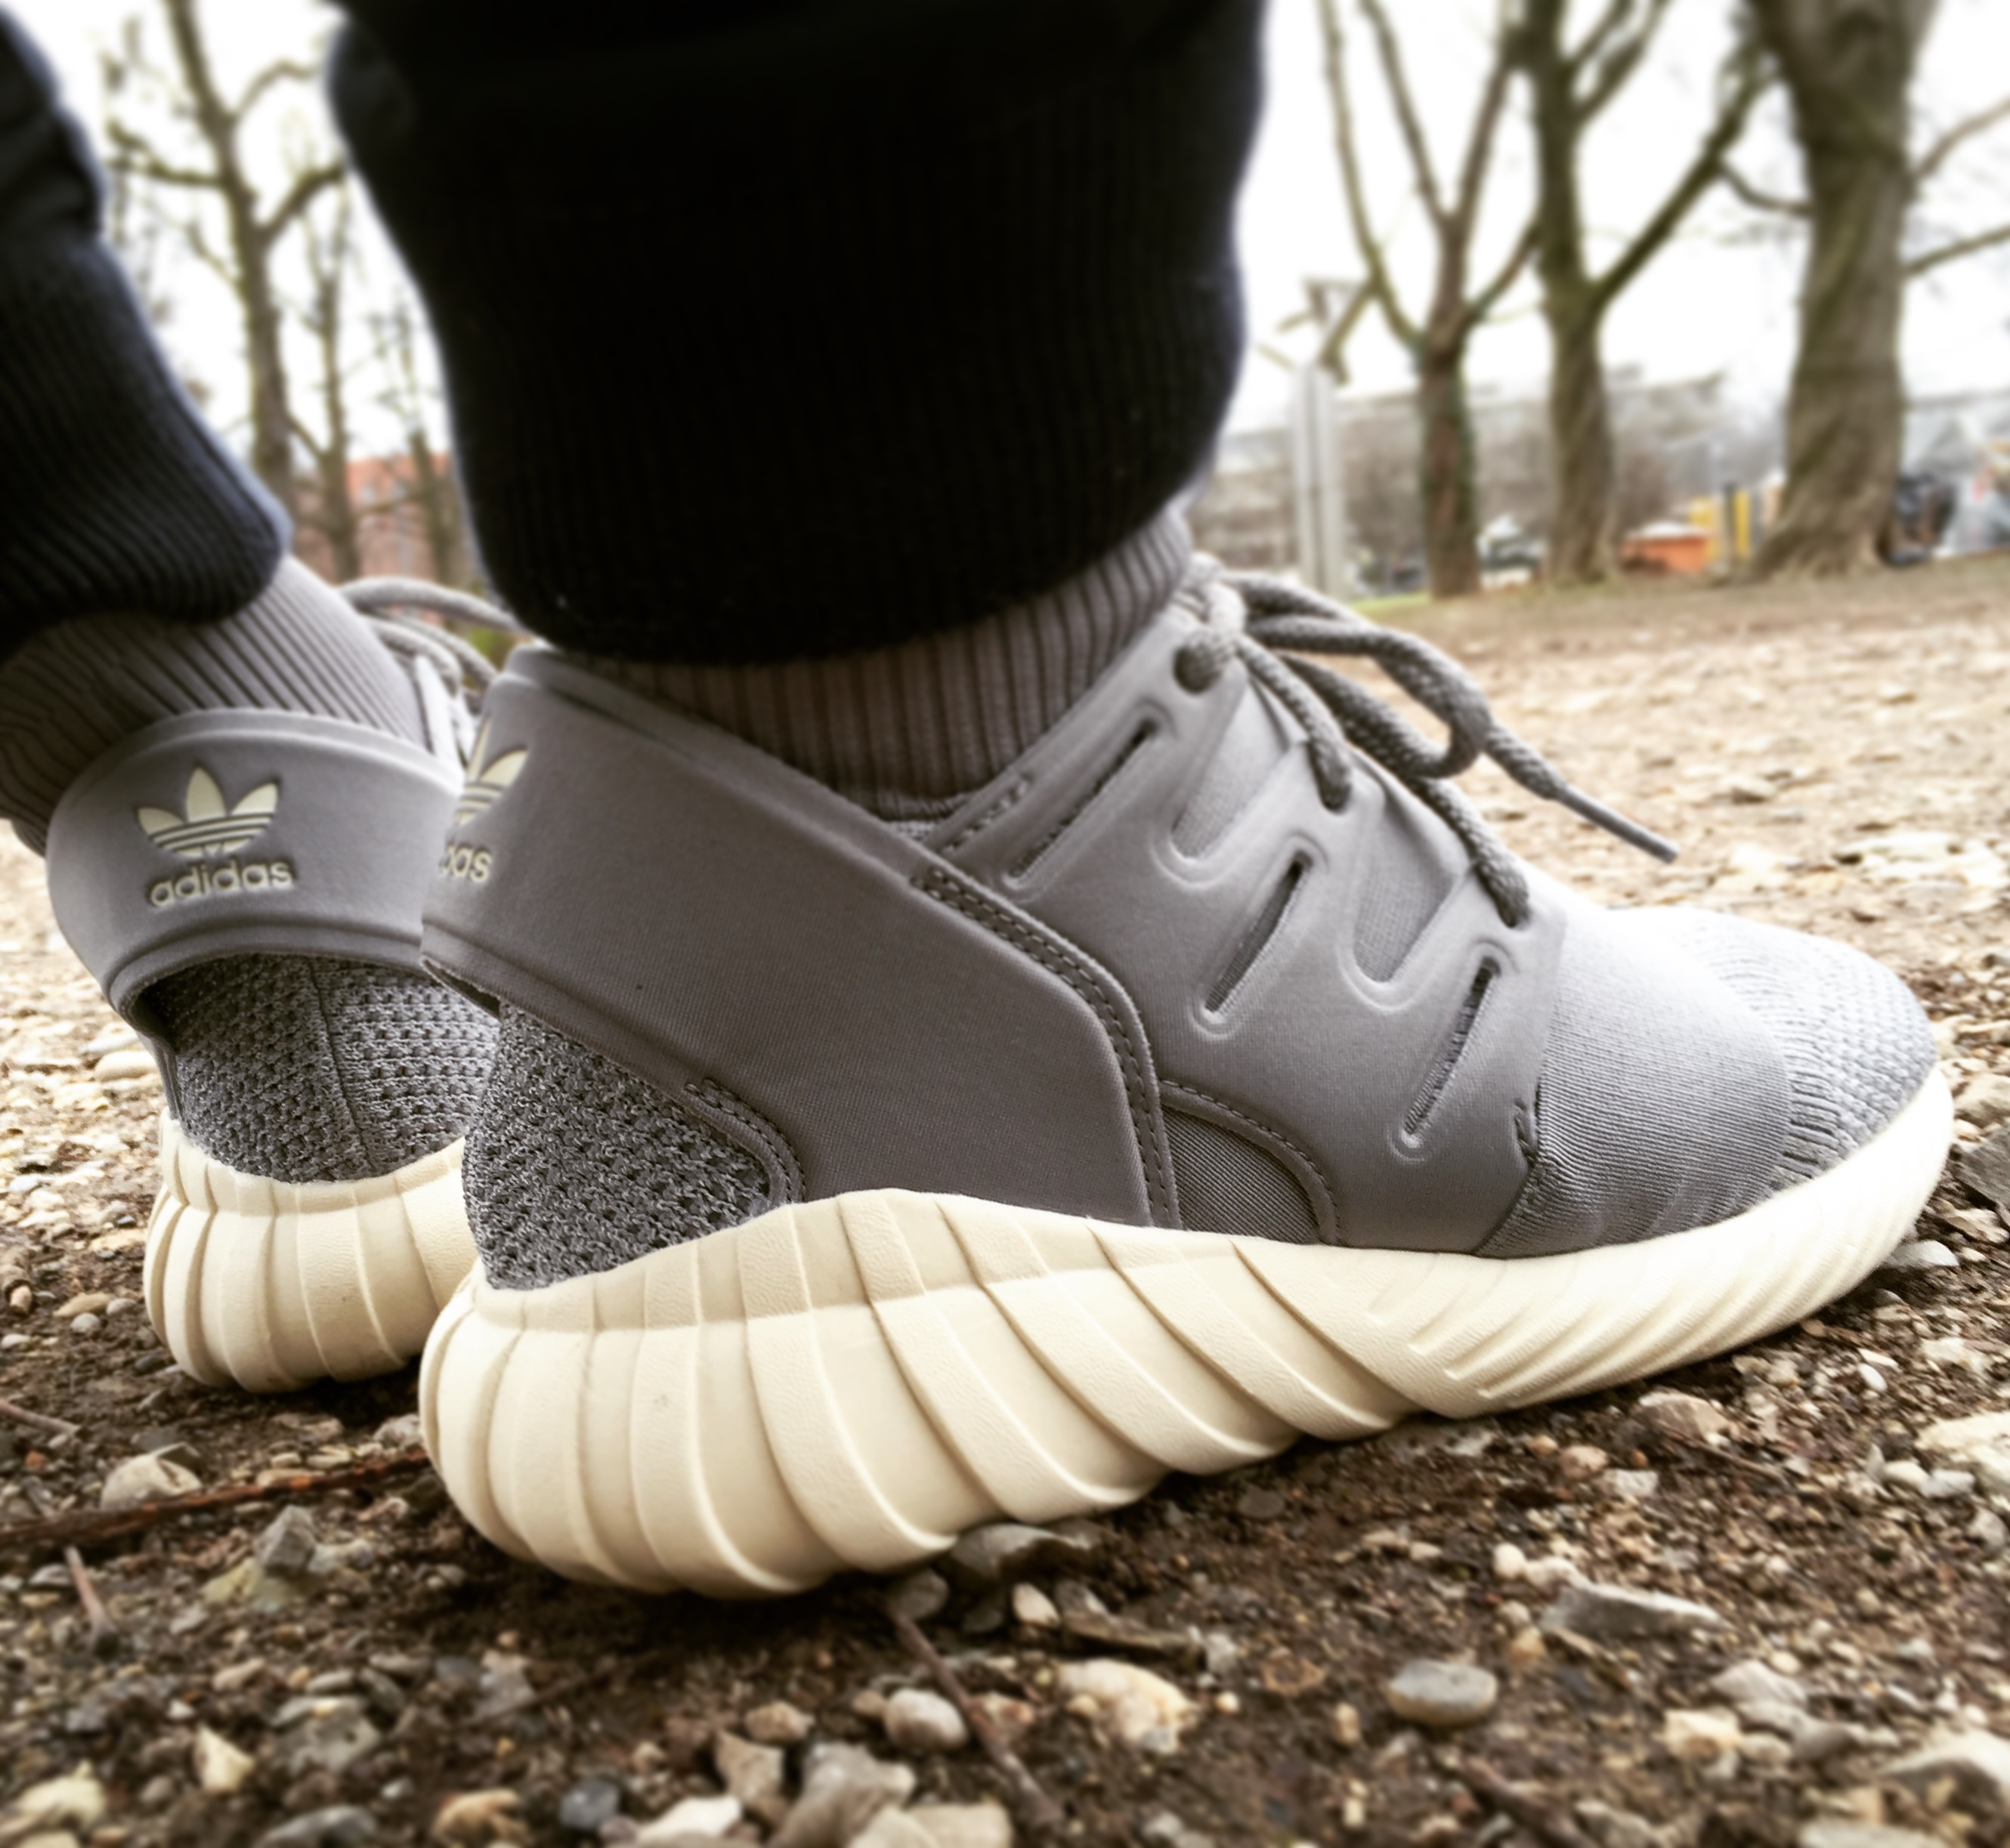 Adidas-Tubular-Doom-Reflective-Rear-View-Benstah-Onfeet